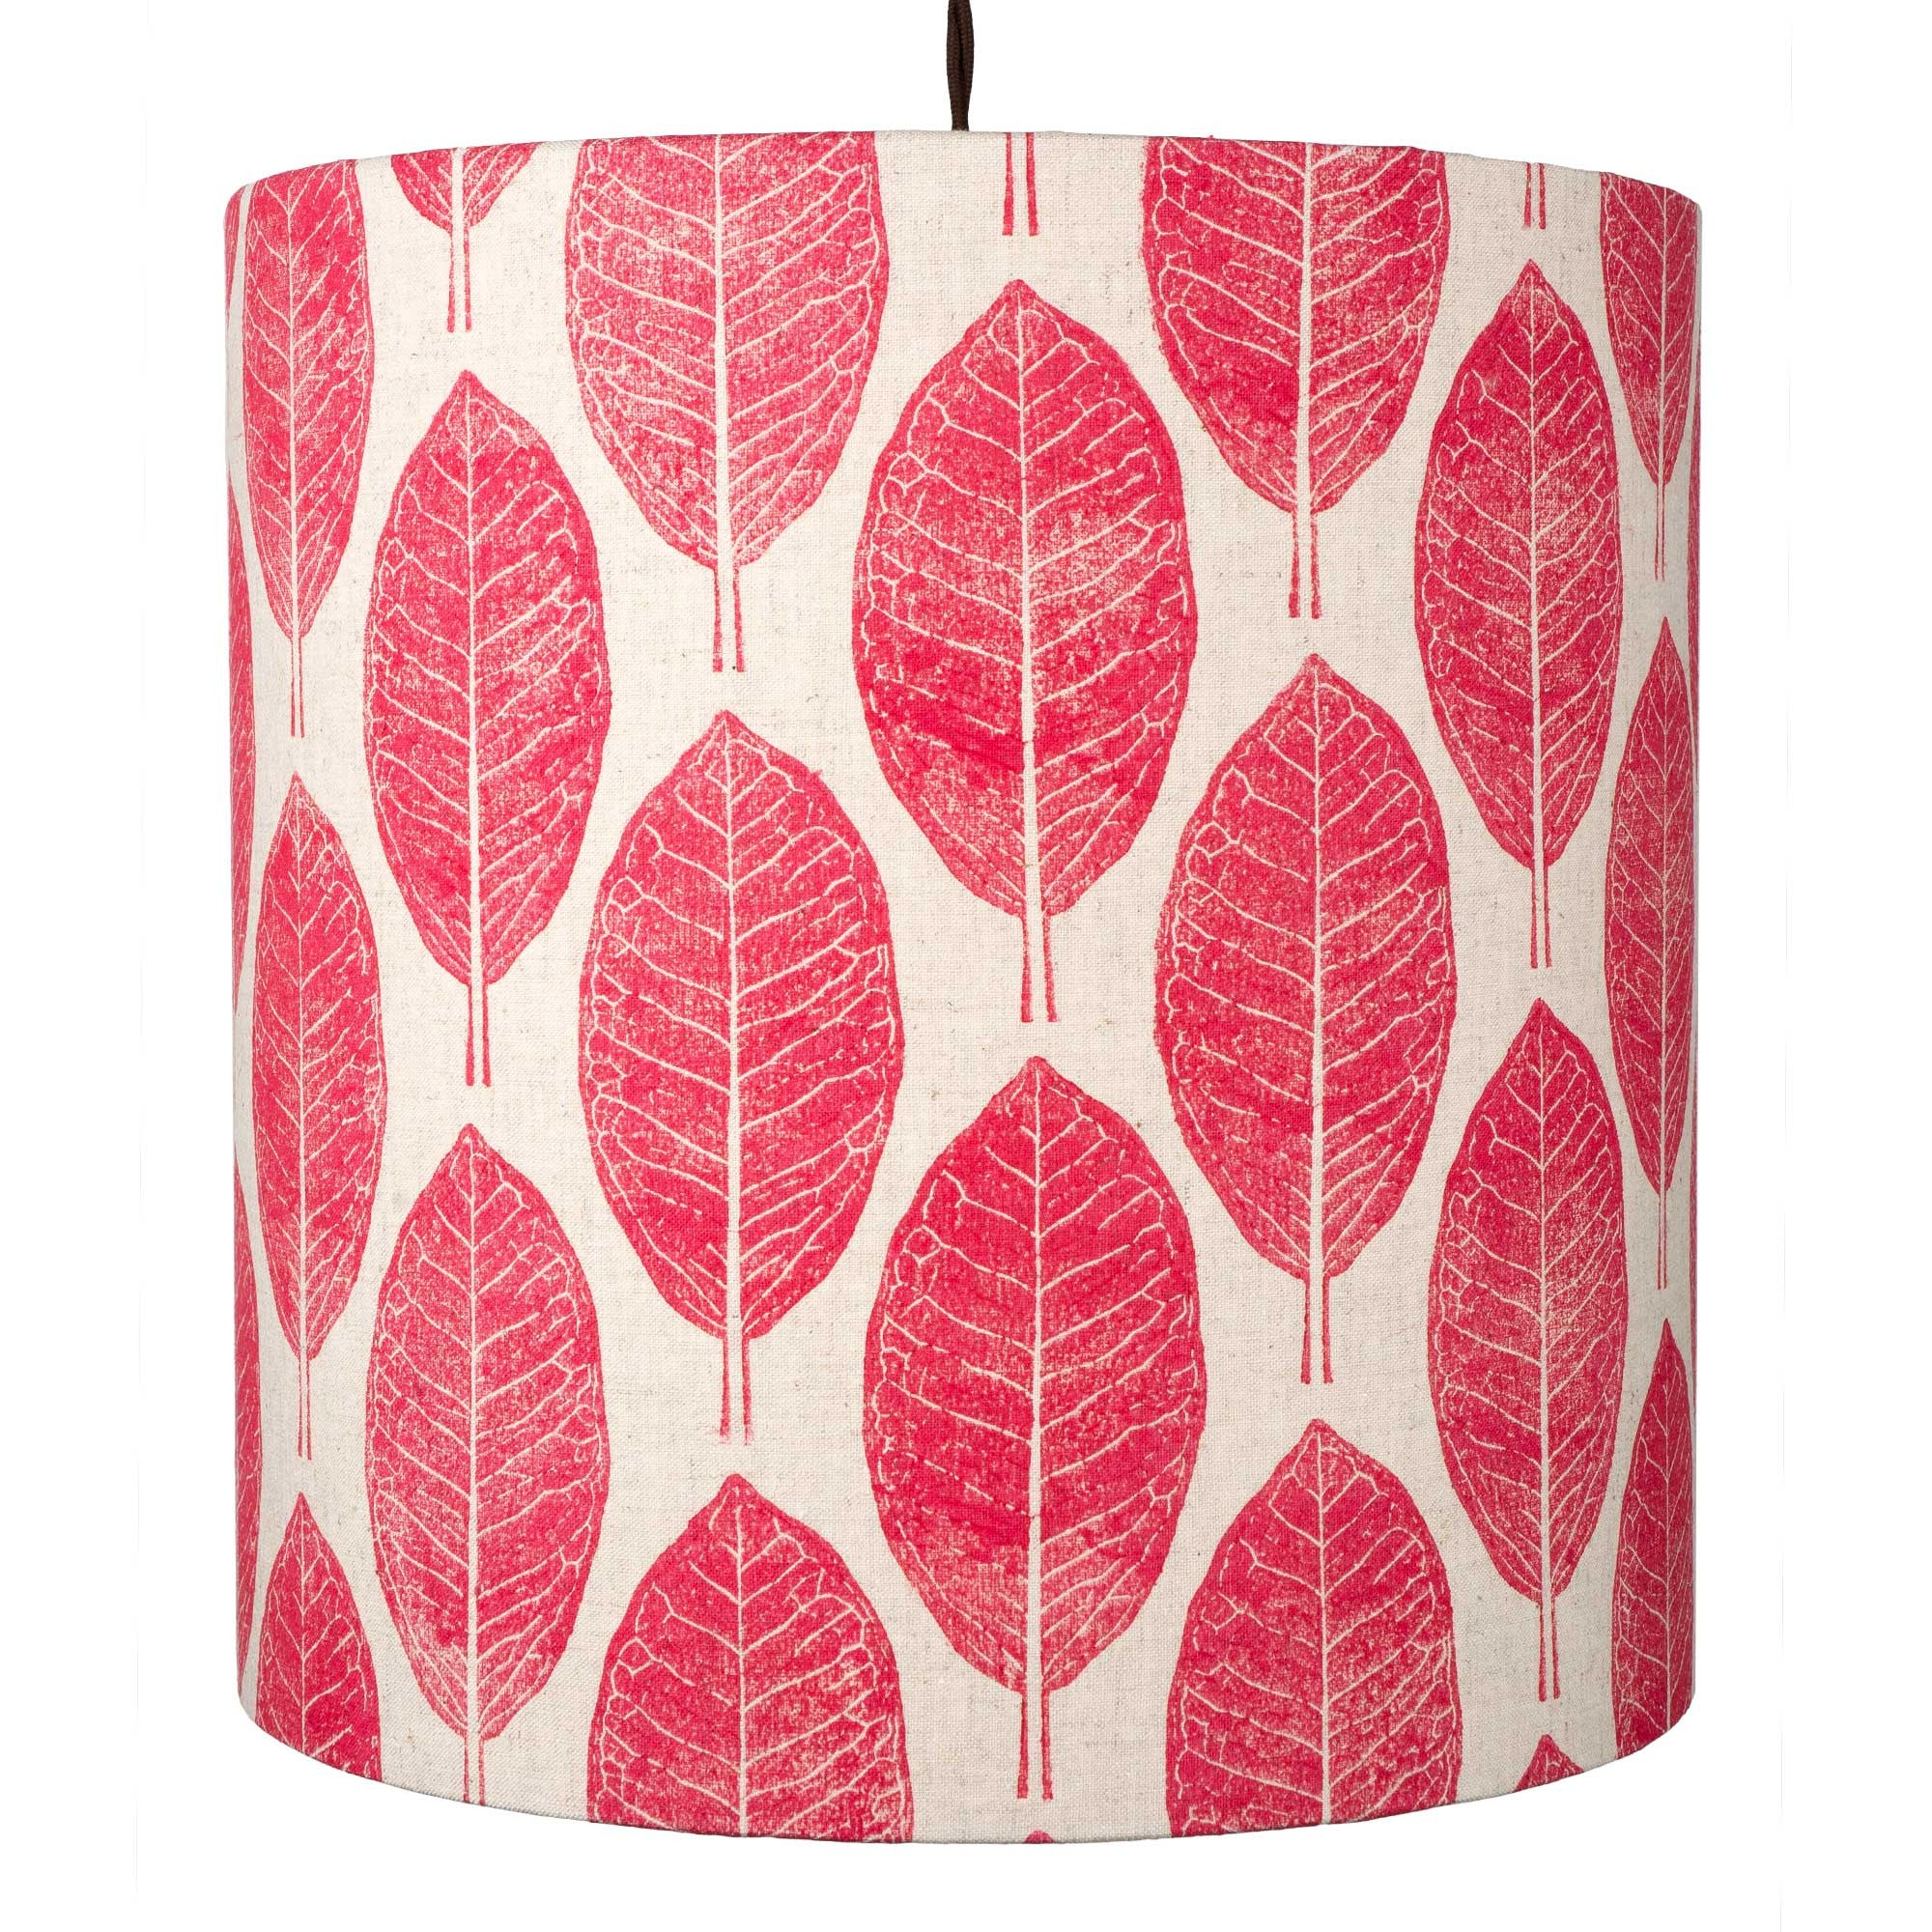 Pink Leaves pendant lightshade